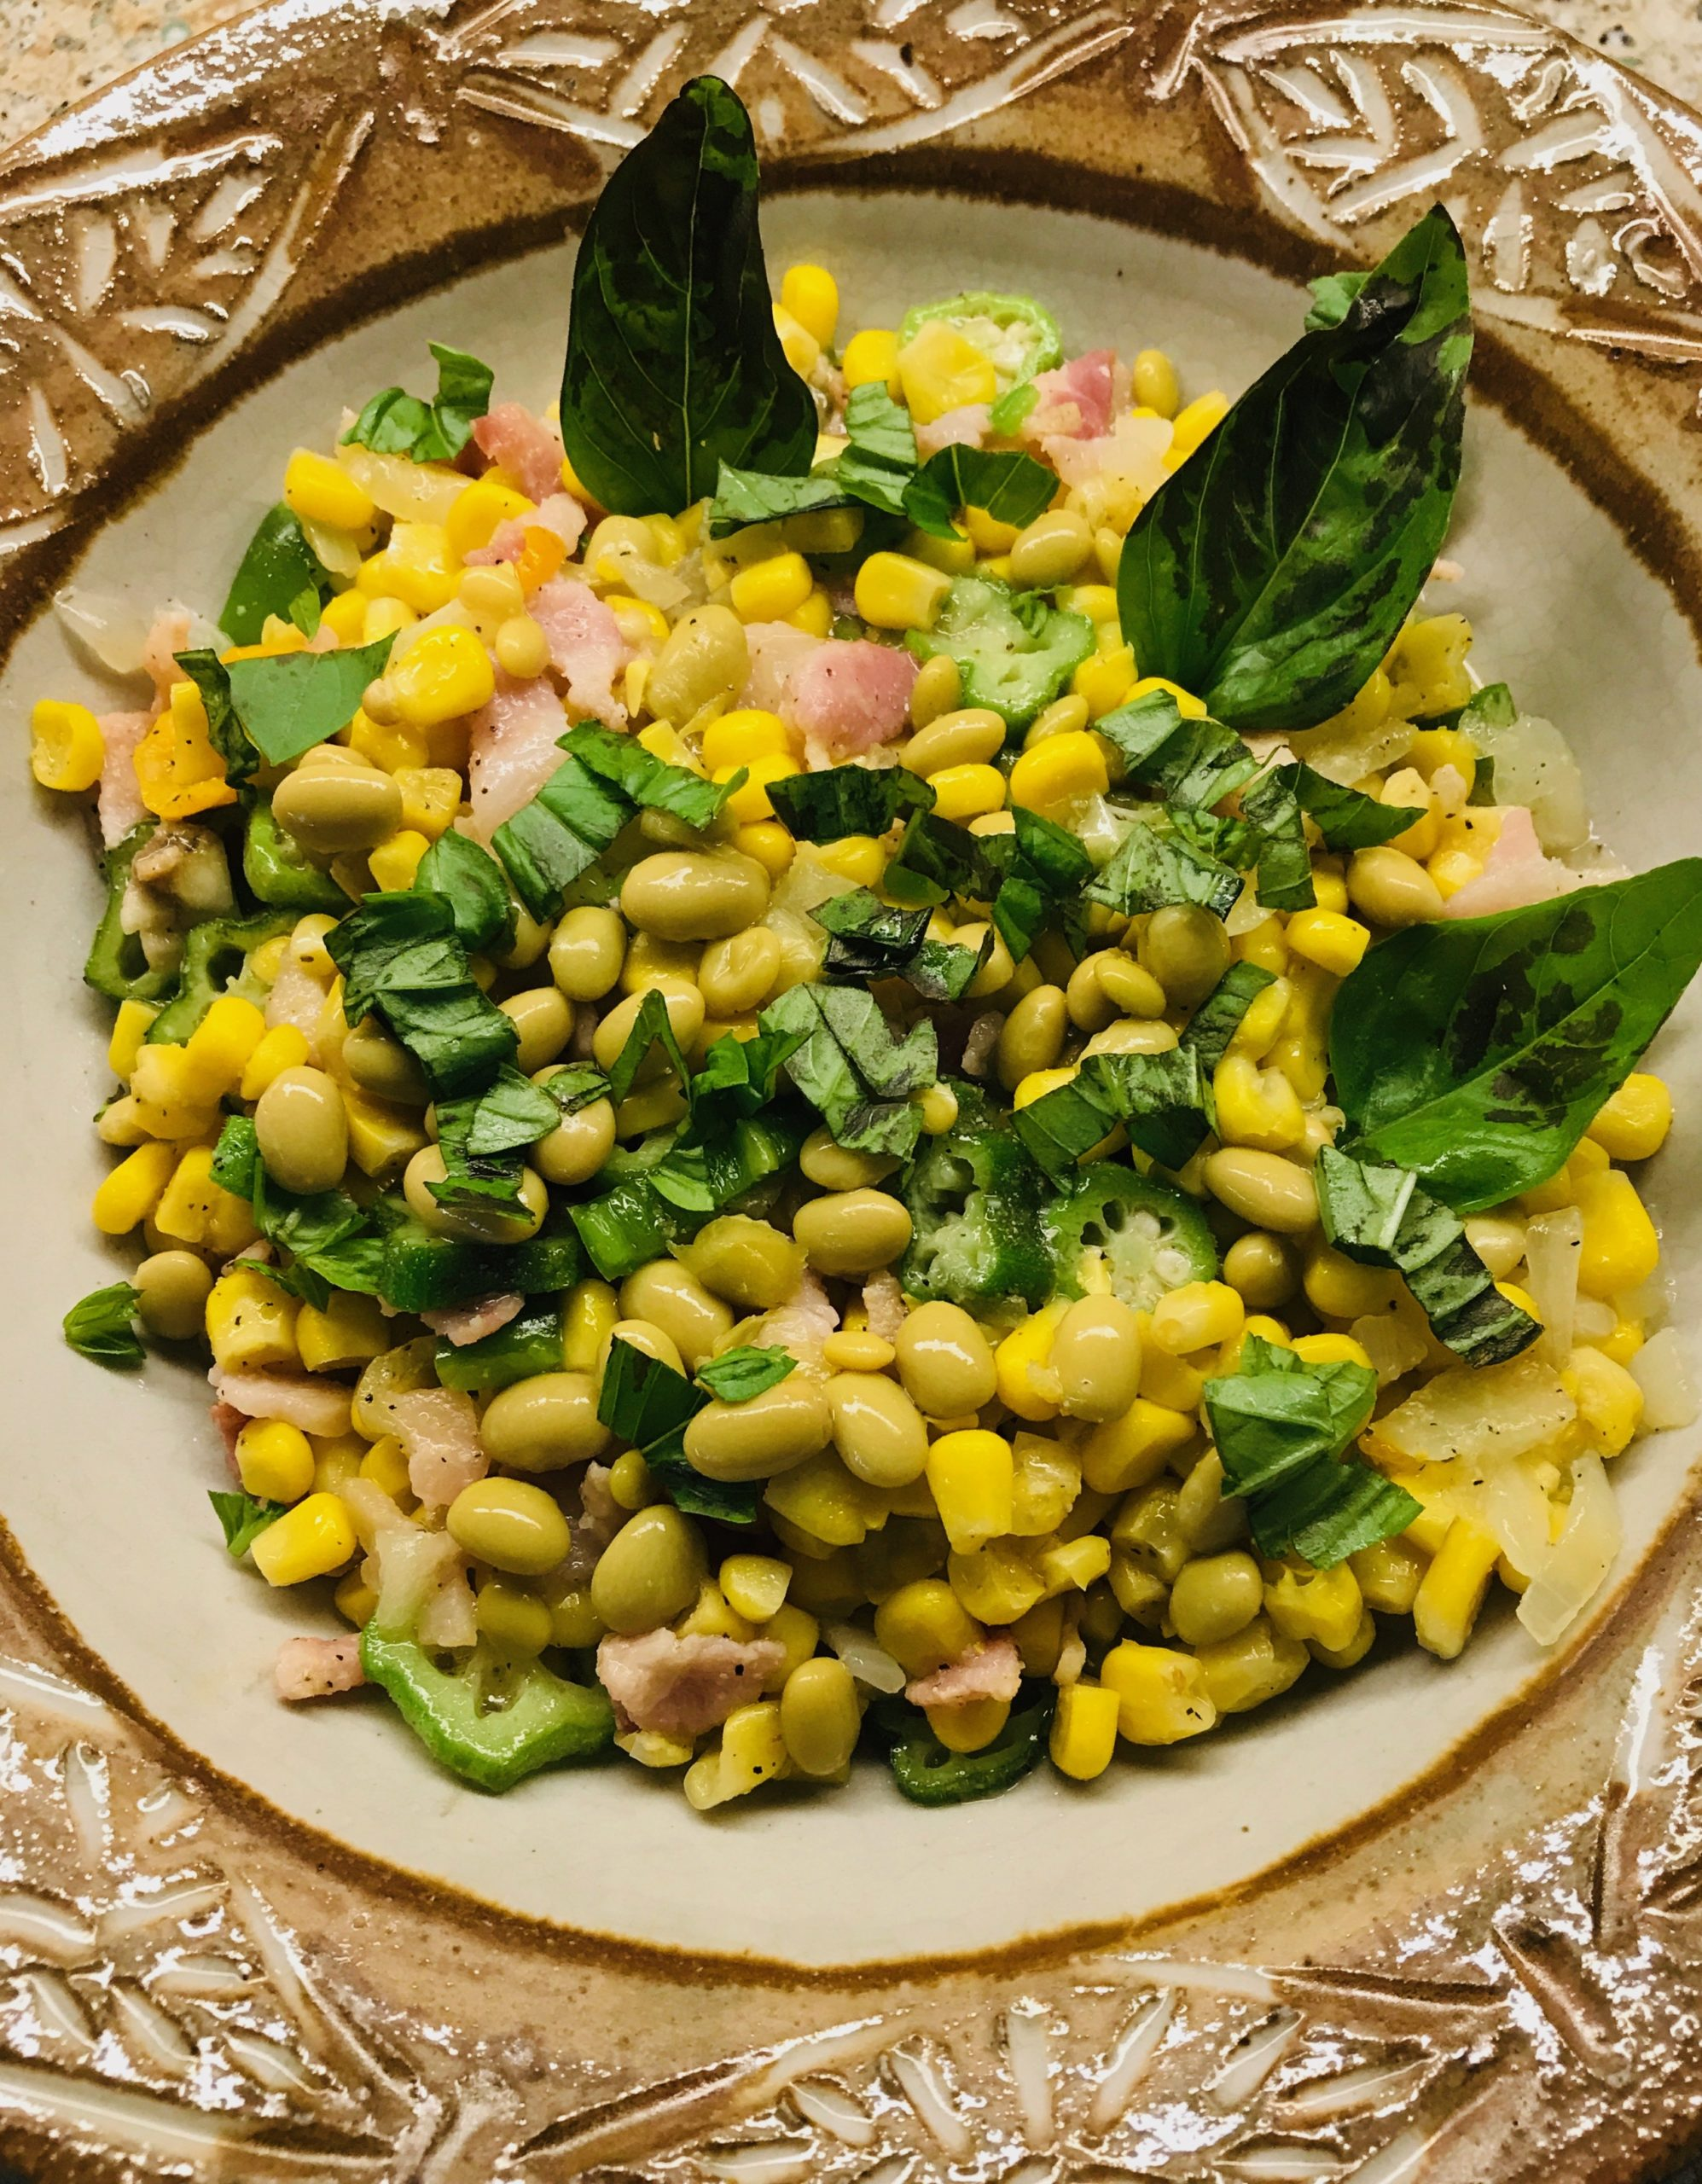 Succotash (The perfect dish for all the vegetables being harvested in The Vineyard District)